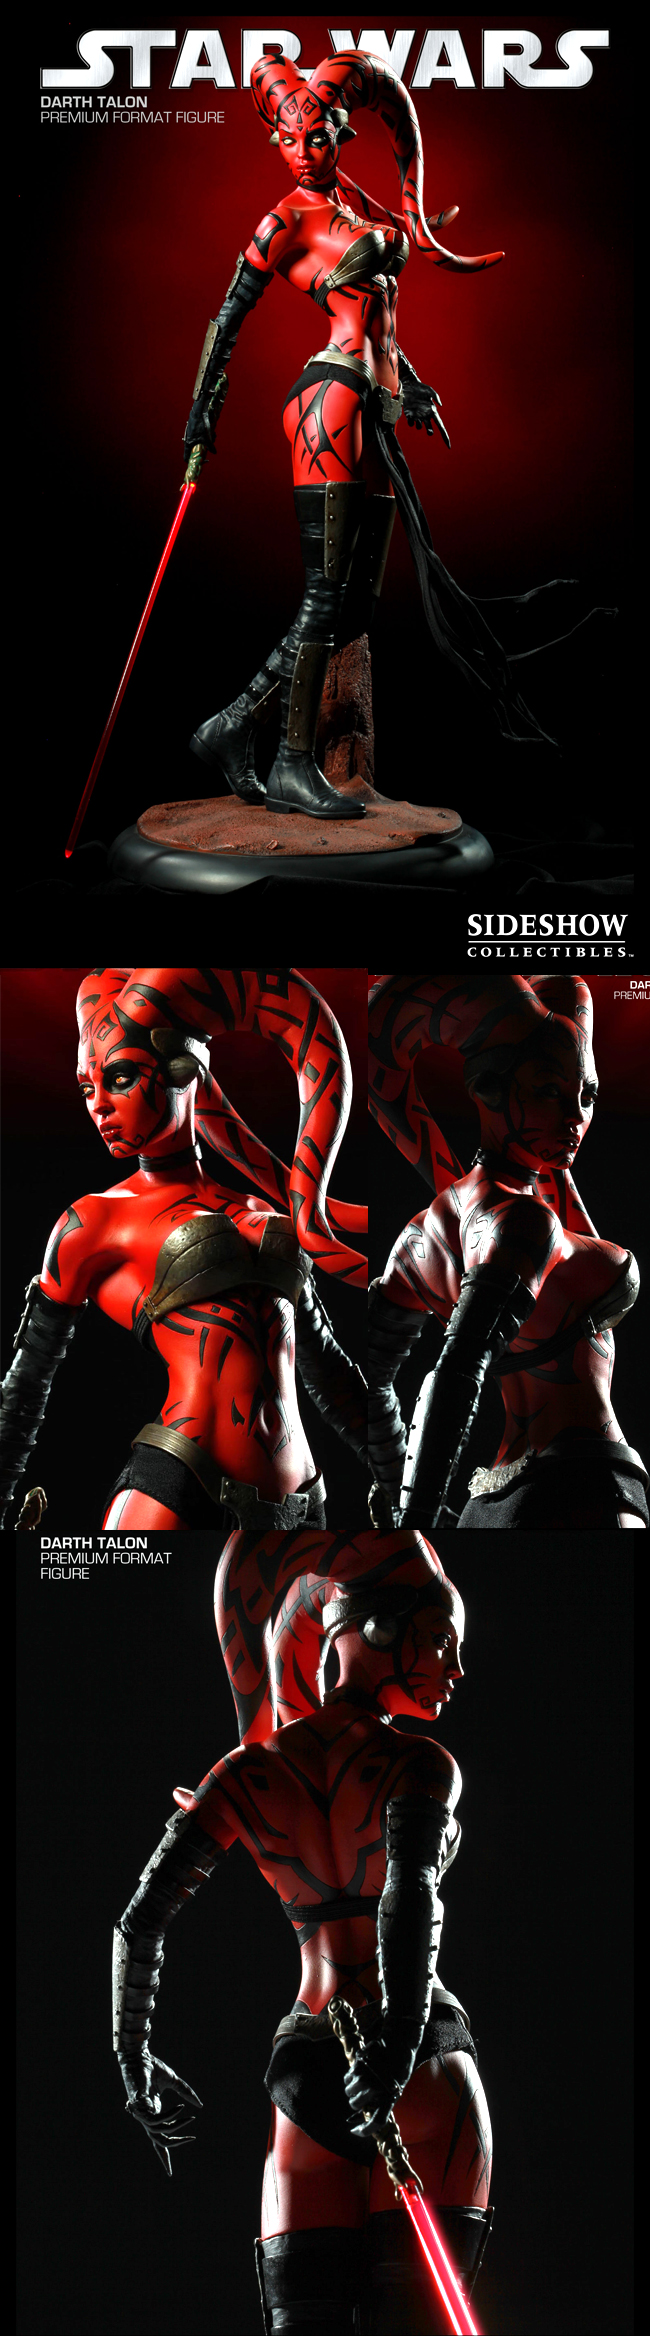 Darth-Talon-Star-Wars-sexy-girl-pin-up-moda-concept-art-bikini-vestuarios-tatuaje-tatoo